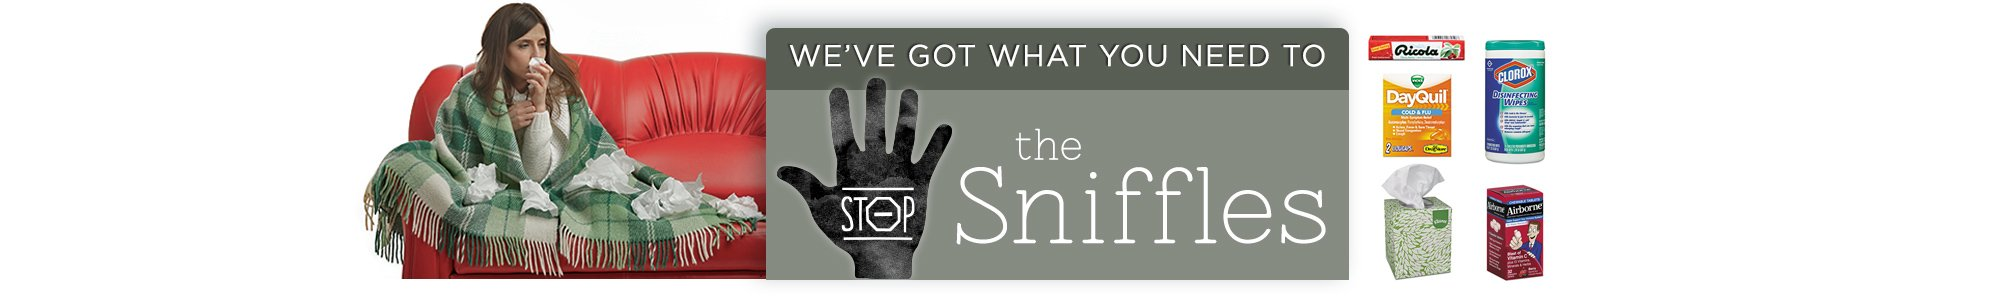 Stop the sniffles